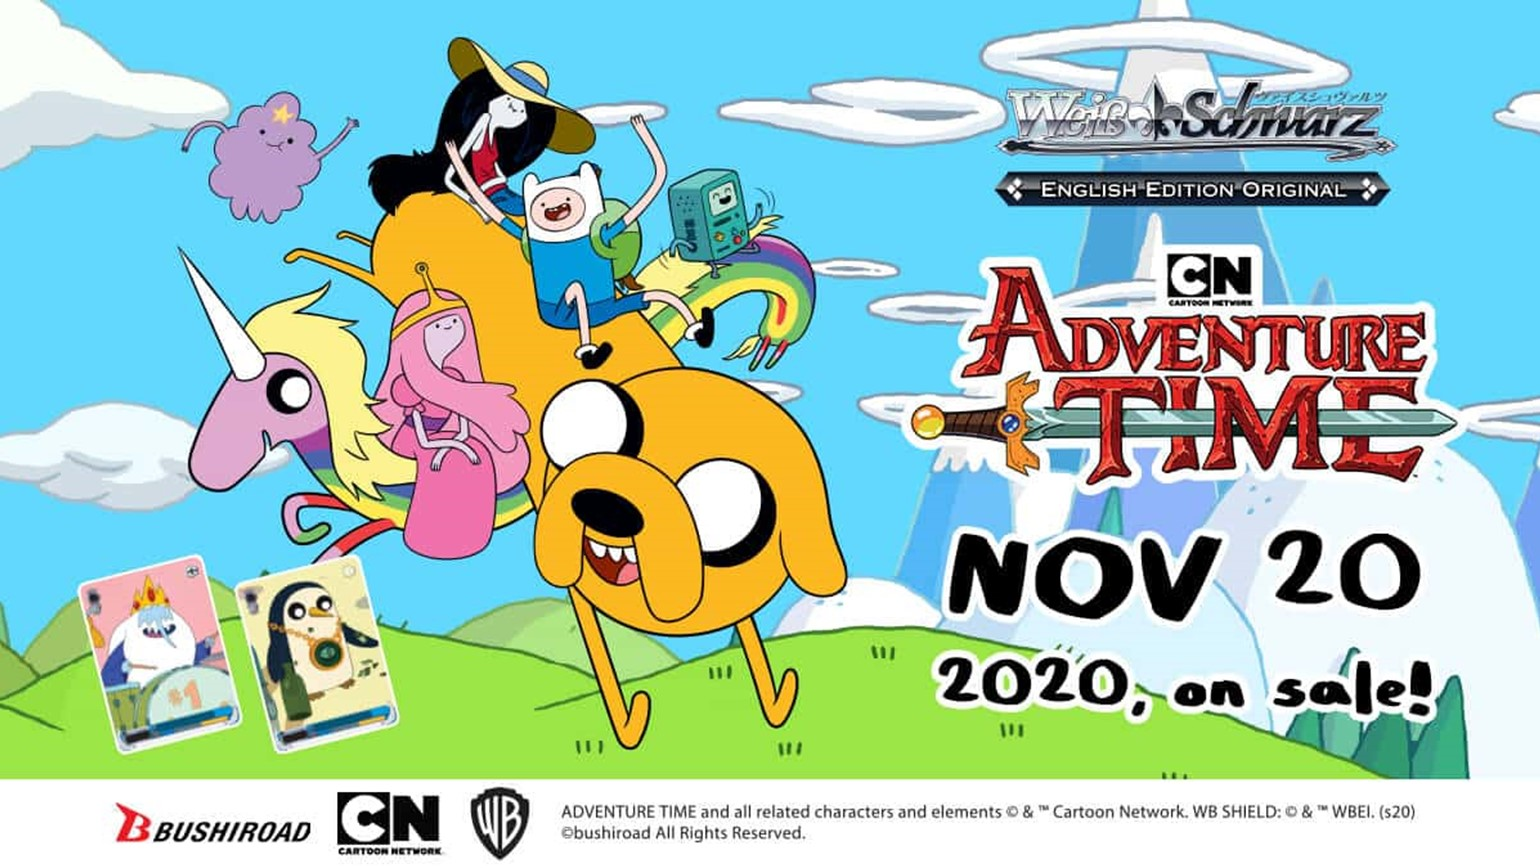 Weiss Schwarz: English Original Title Adventure Time Goes on Sale November 20th!